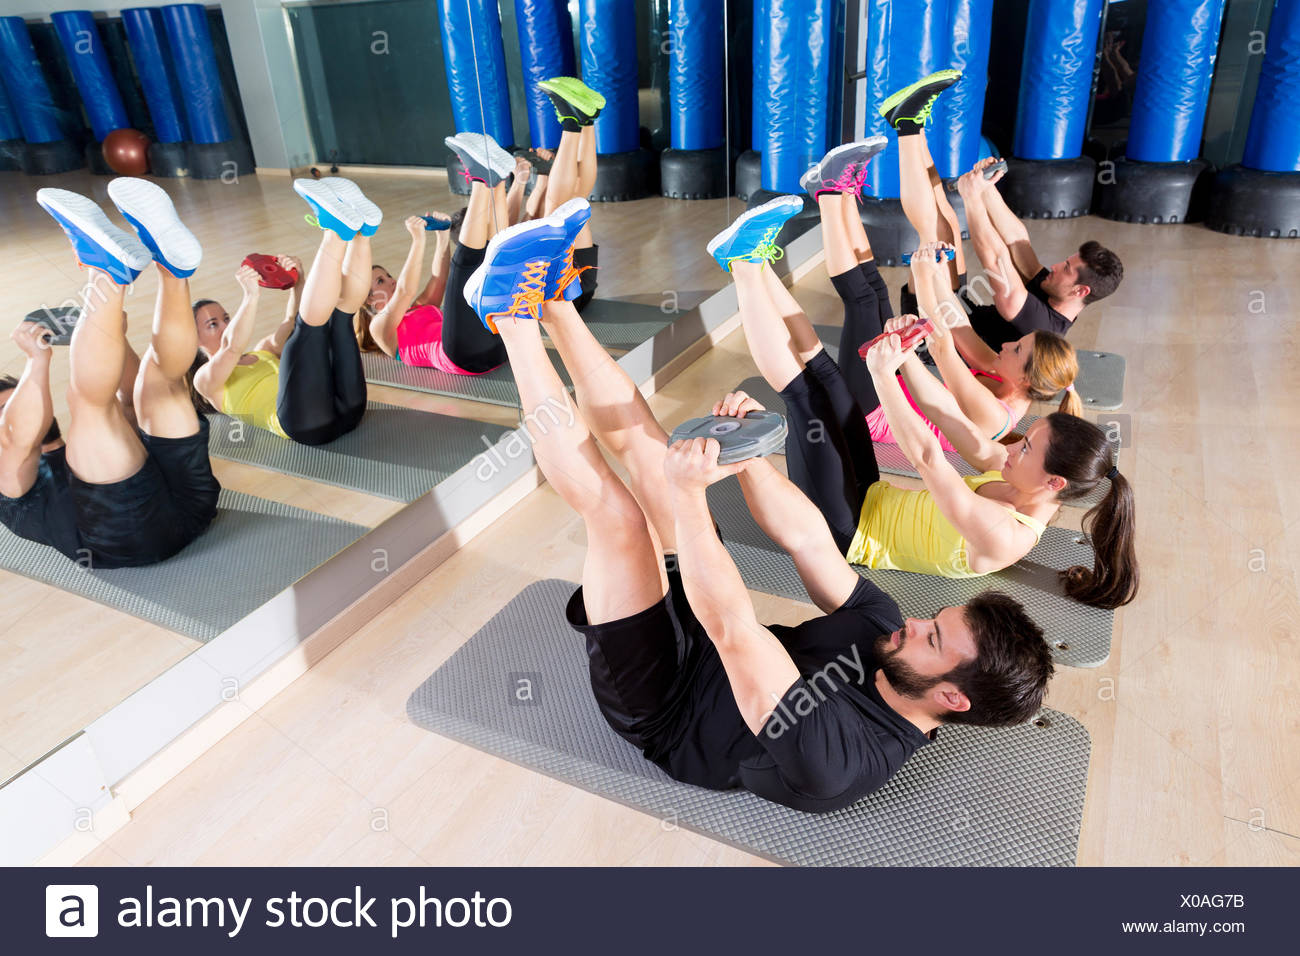 Abdominal plate training core group at gym fitness workout. - Stock Image